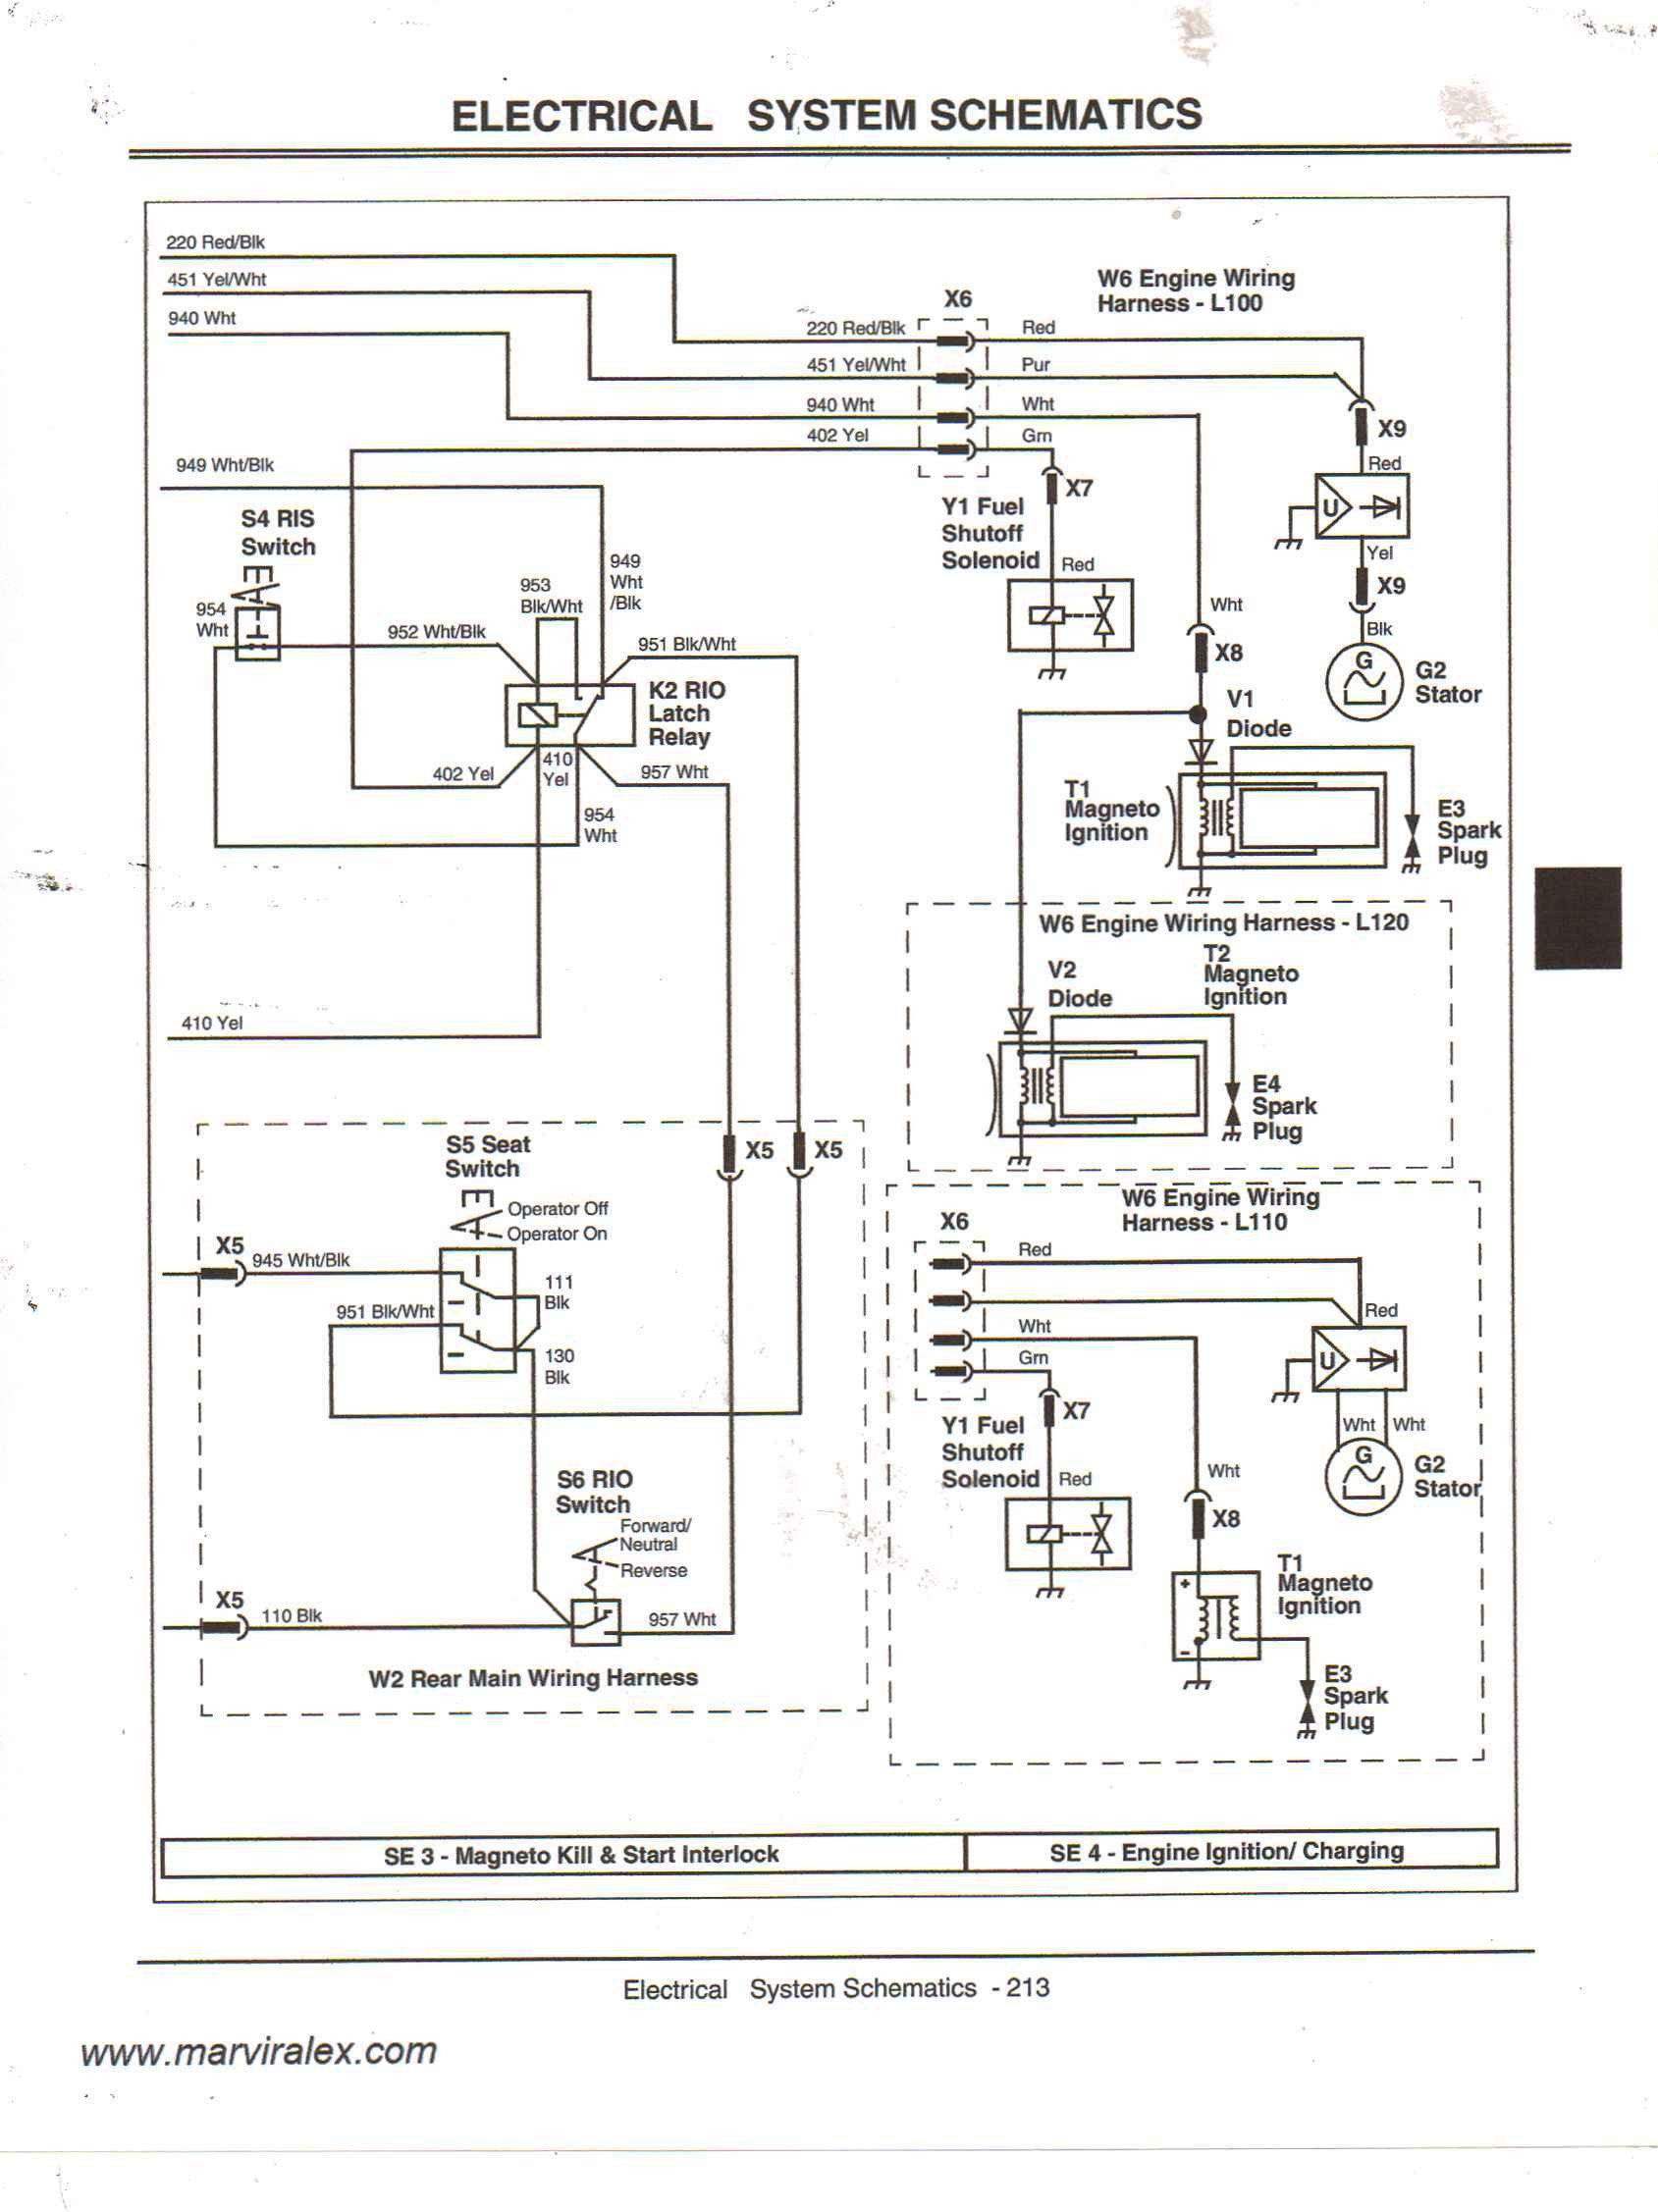 john deere 265 wiring diagram wiring diagram